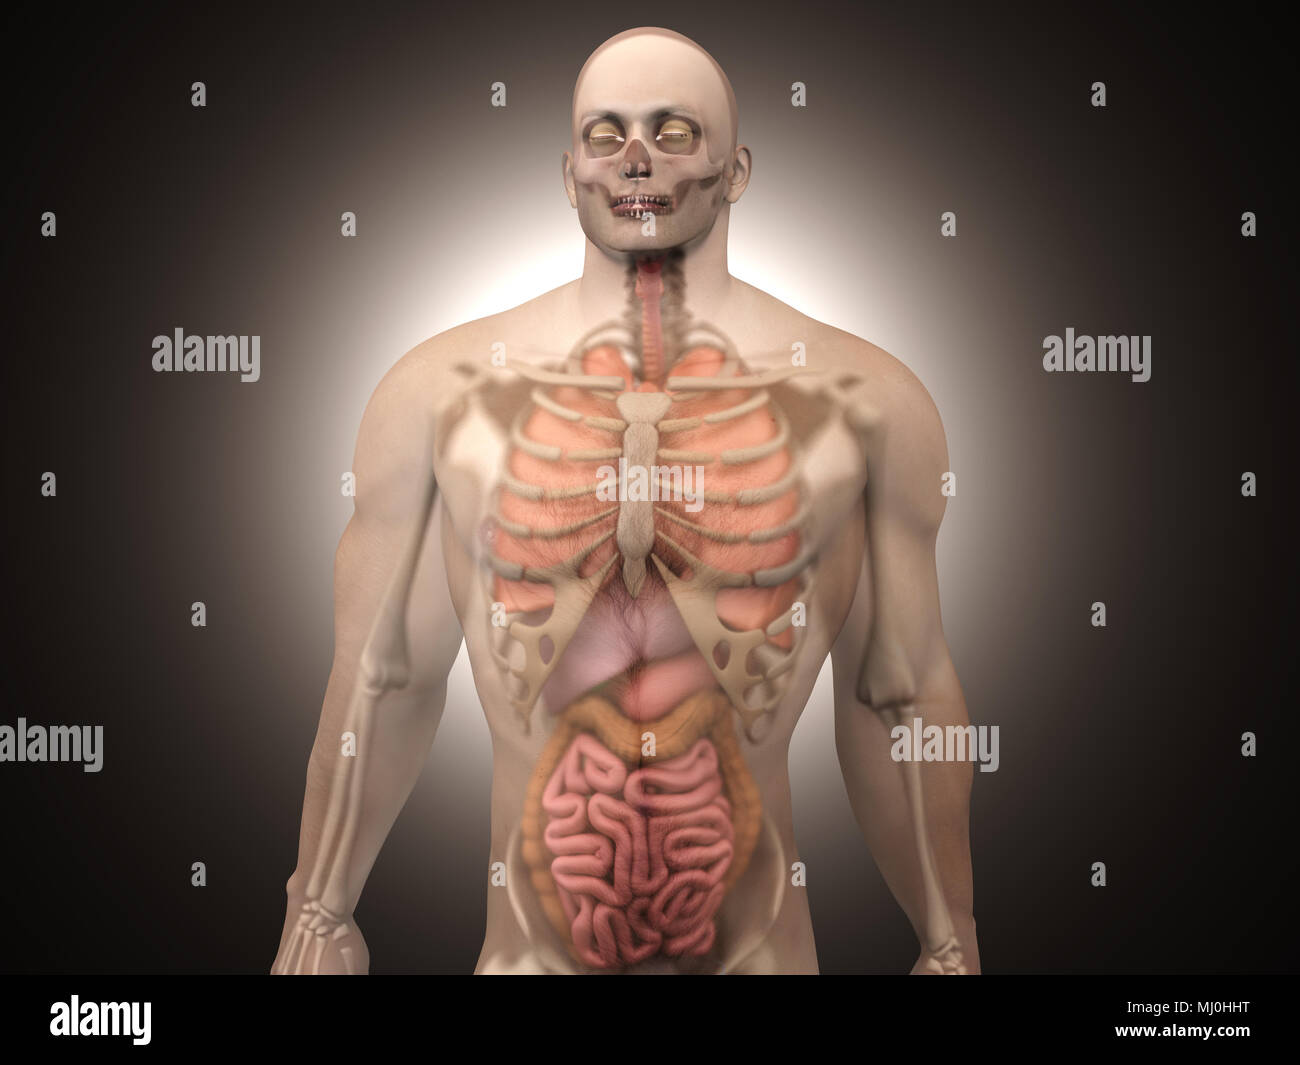 3d Visualization Of The Human Anatomy The Internal Organs In A Semi